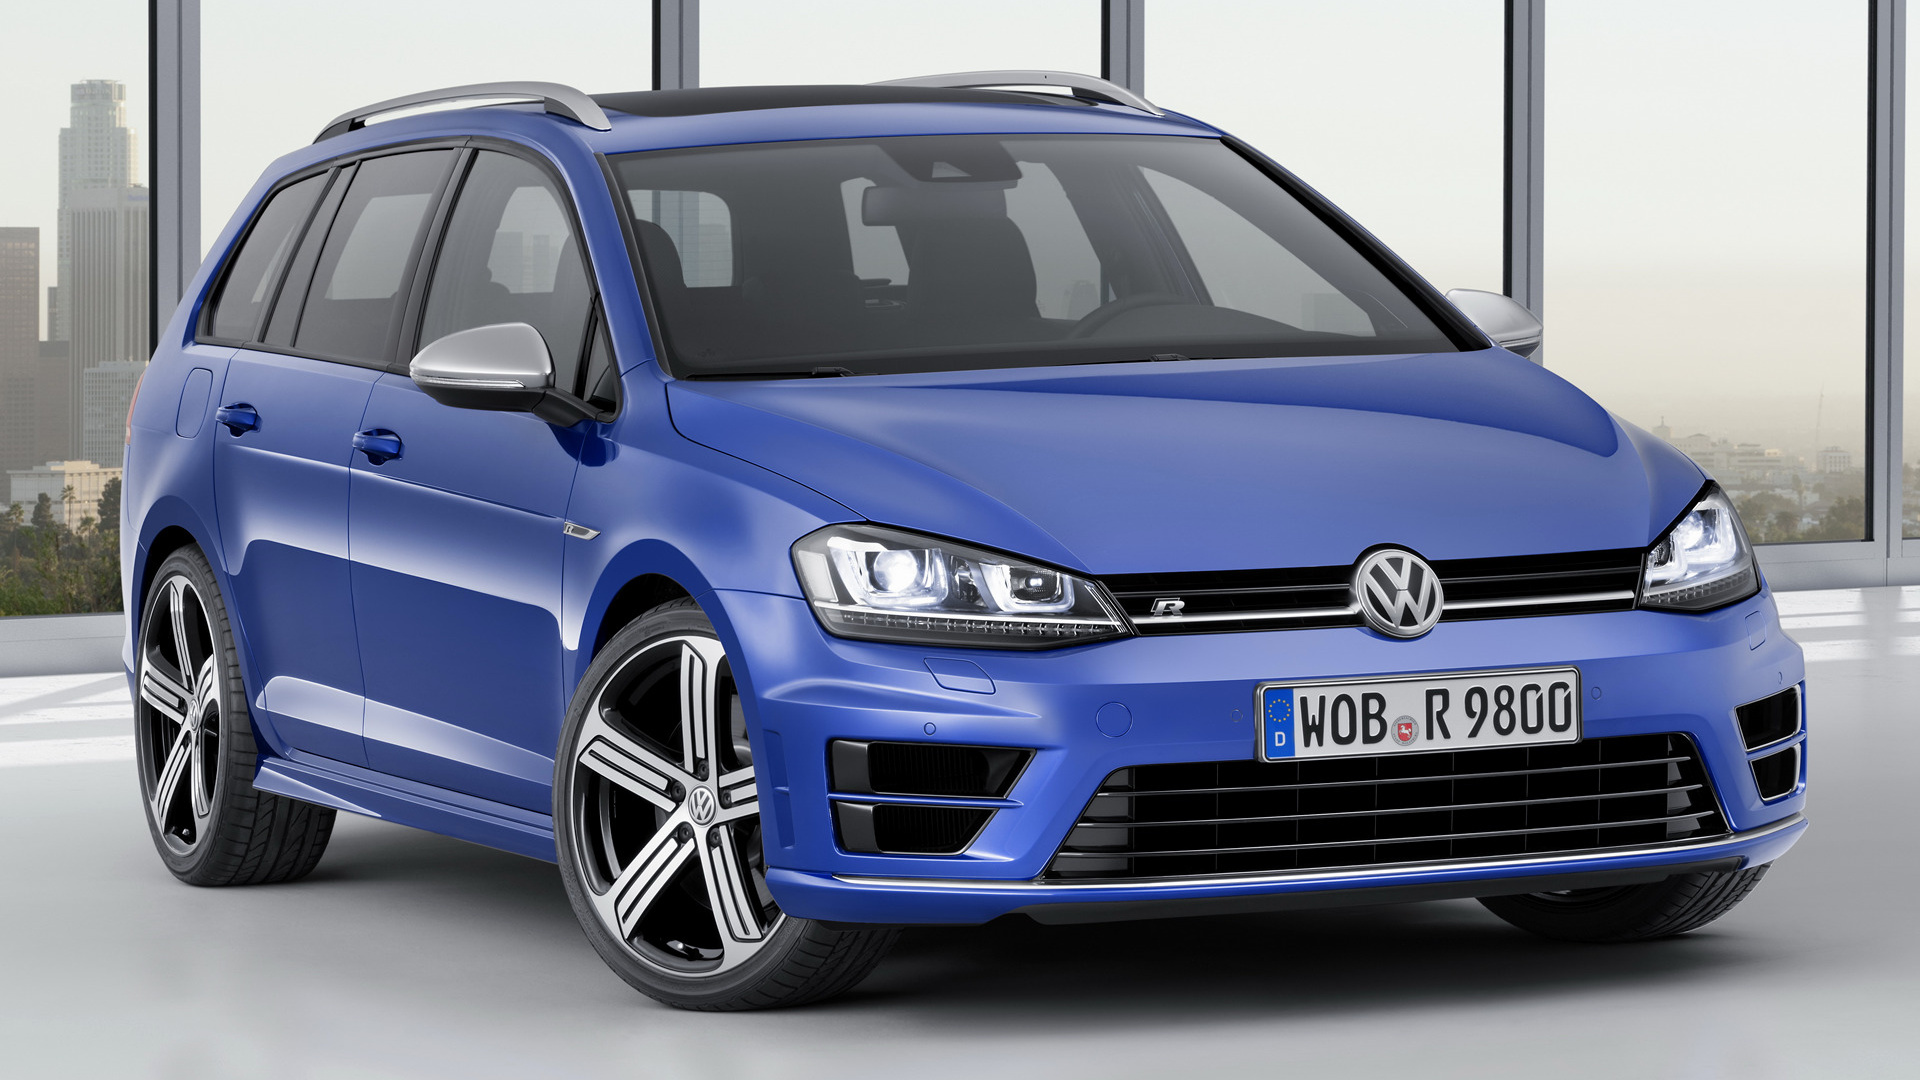 Volkswagen Golf R Variant 2015 Wallpapers and HD Images 1920x1080